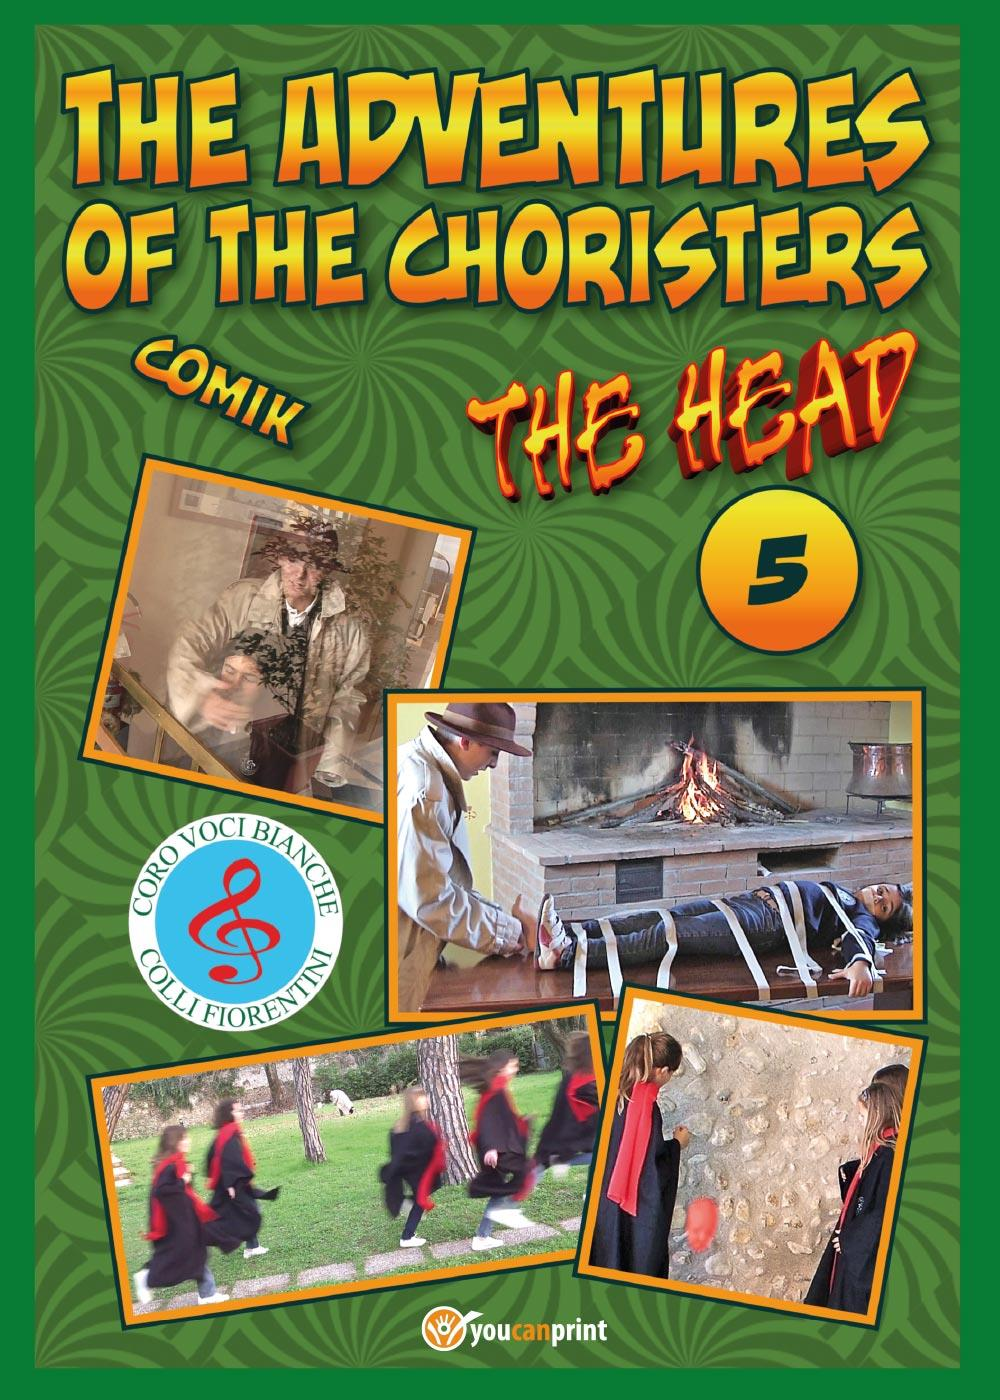 The adventures of the choristers - The Head